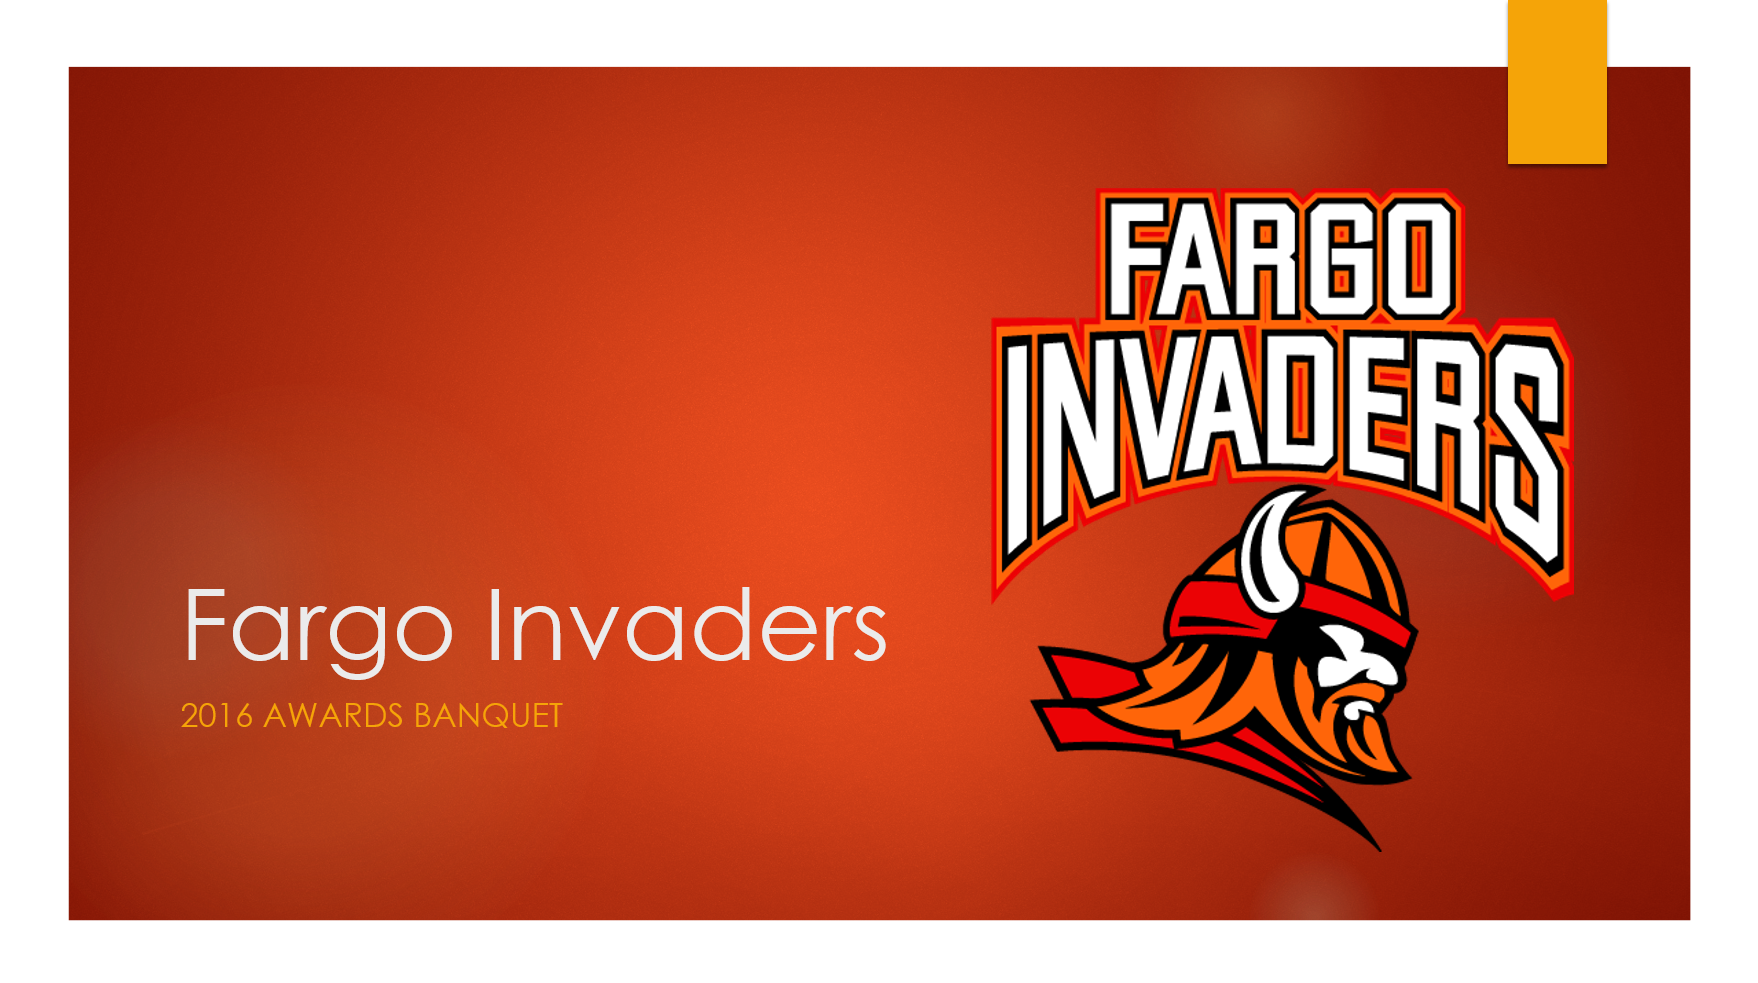 Fargo Invaders 2016 Awards Banquet